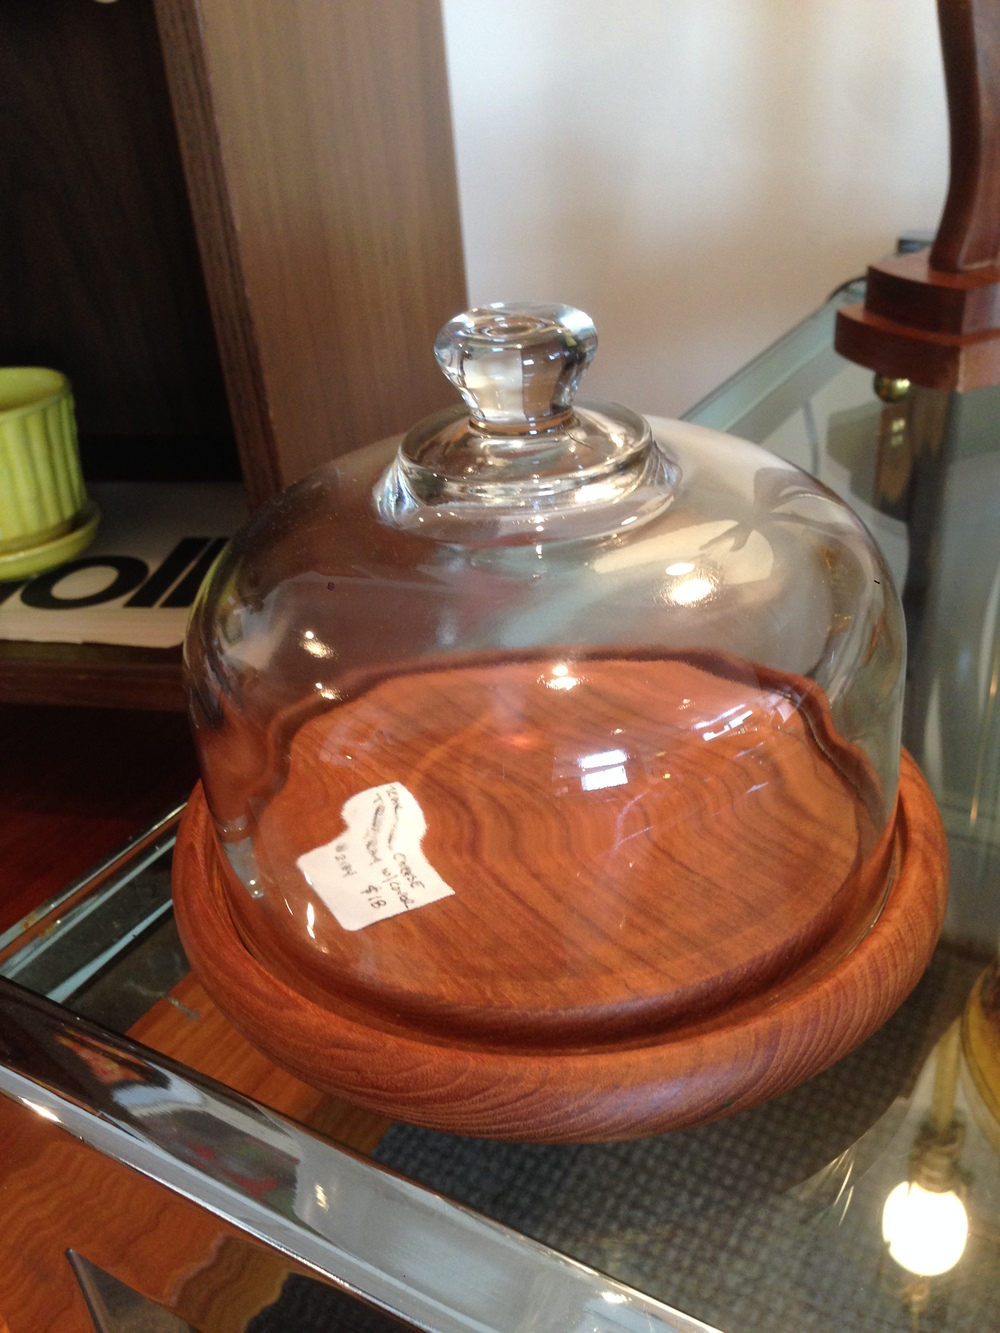 Teak cheese tray with glass lid. Teak, walnut, and rosewood were all popular during the era because of their warm colors.